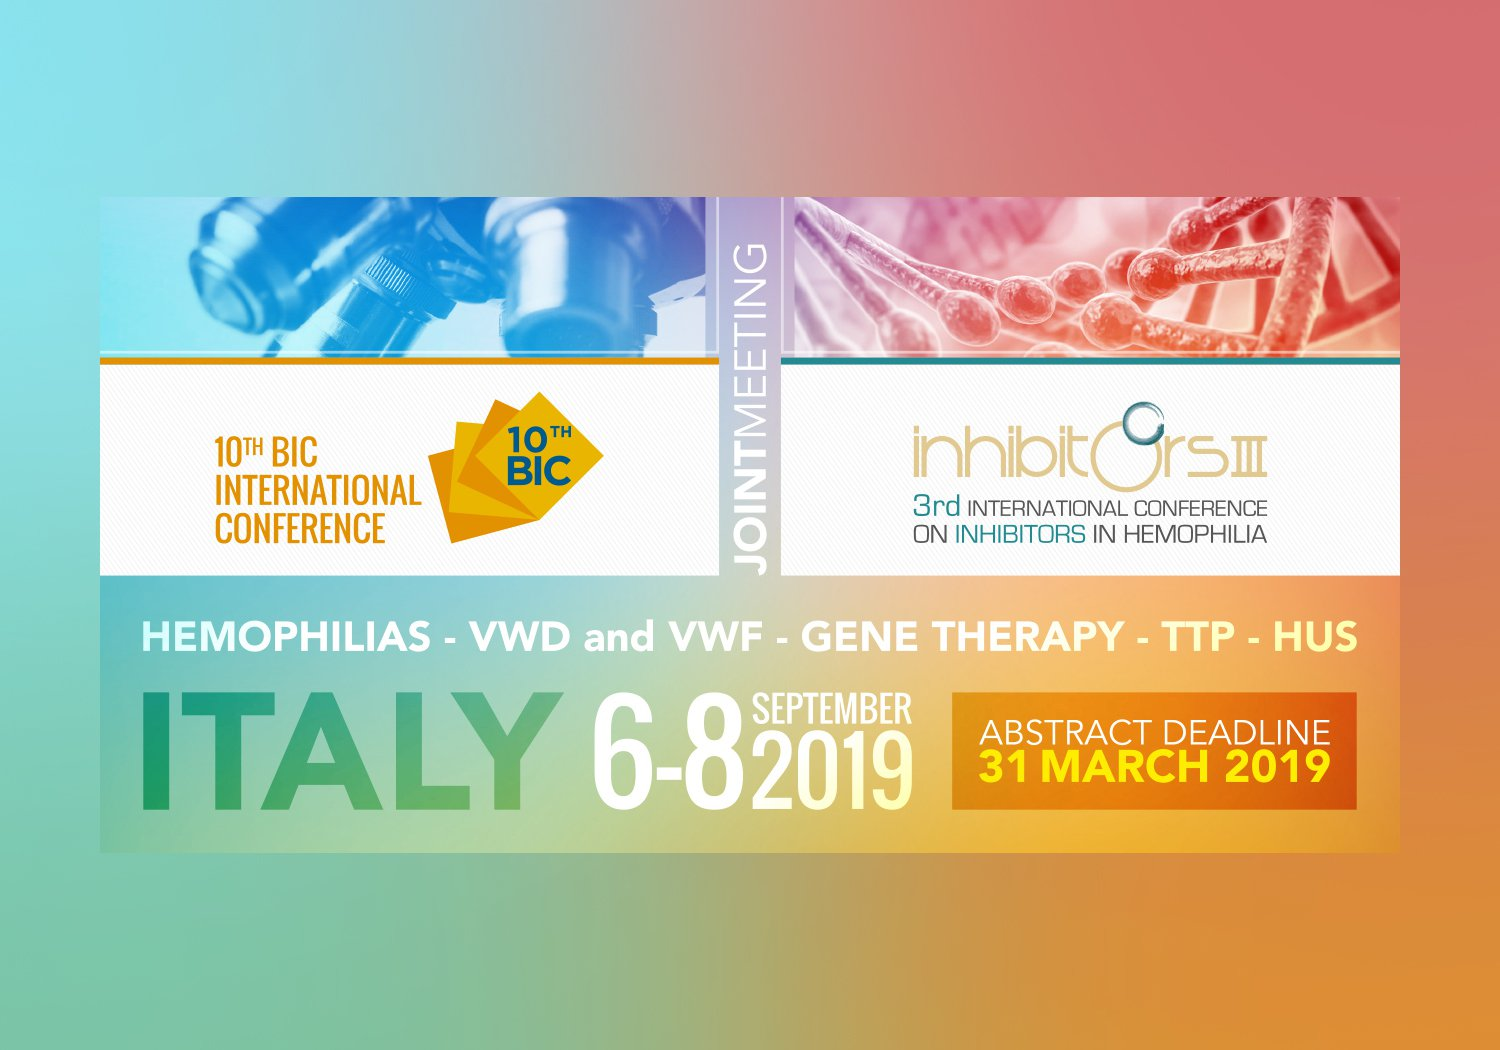 10TH BIC INTERNATIONAL CONFERENCE I 6-8th September, Milan, Italy